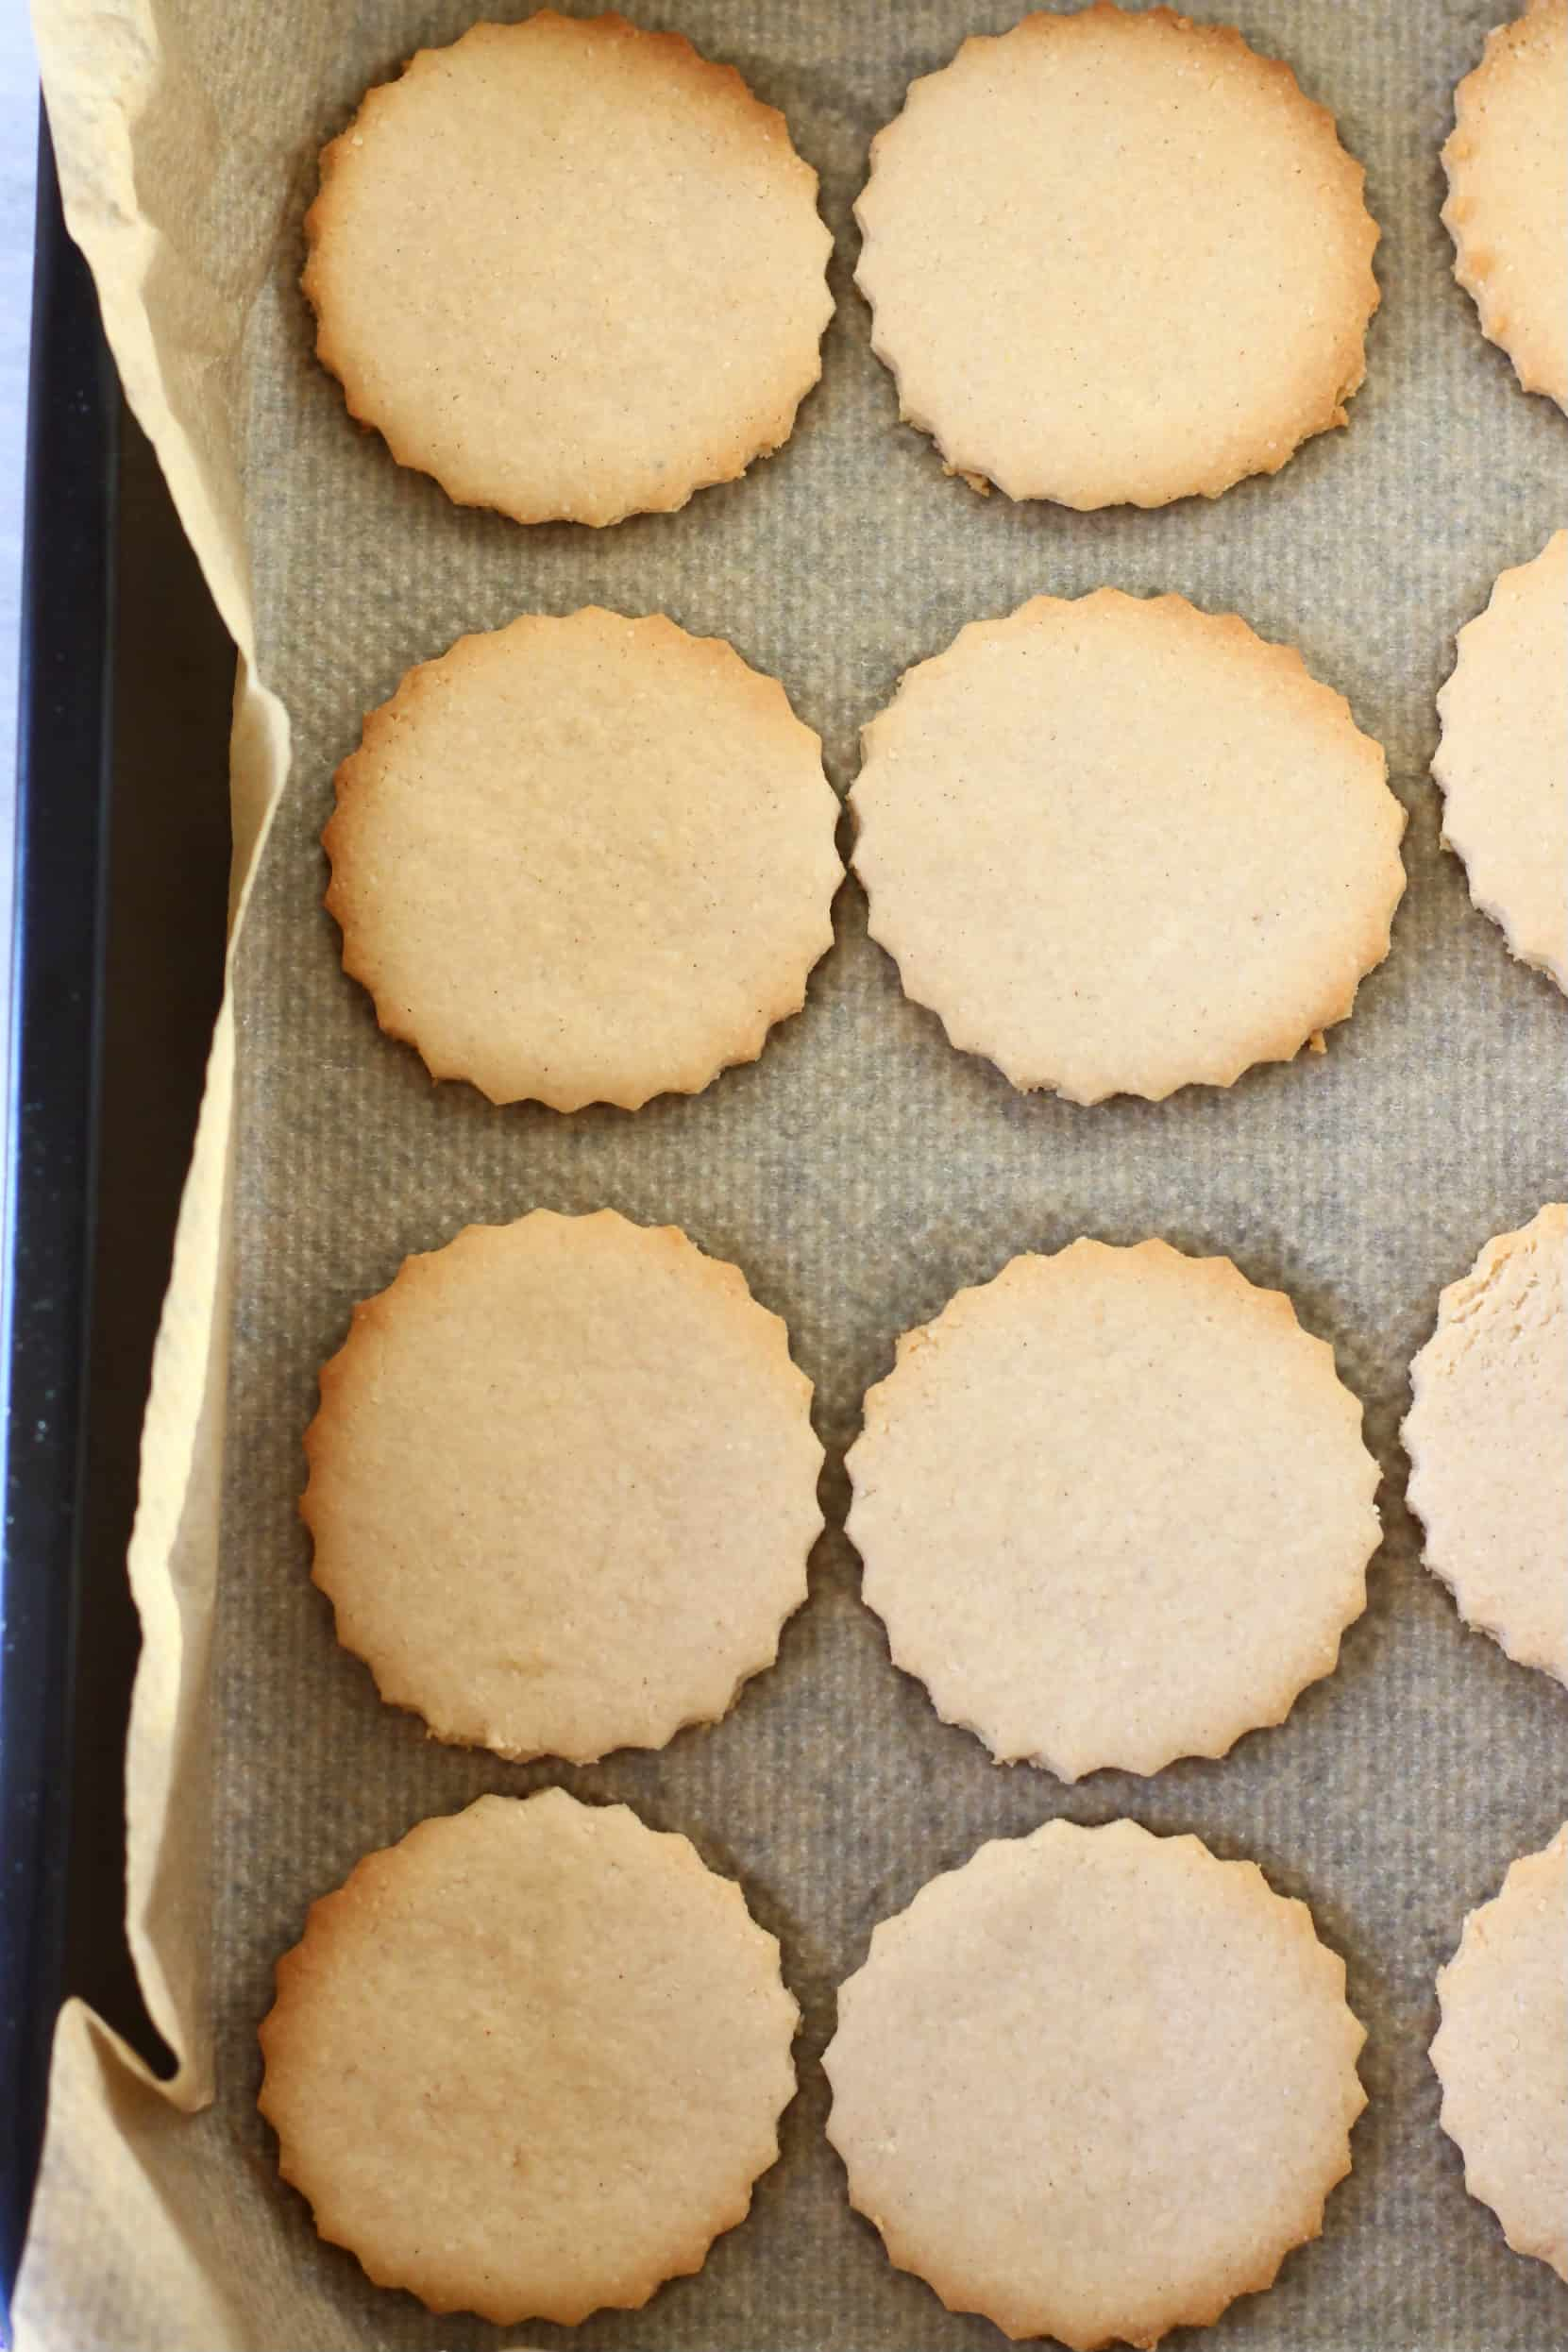 Eight gluten-free vegan linzer cookie circles on a baking tray lined with baking paper